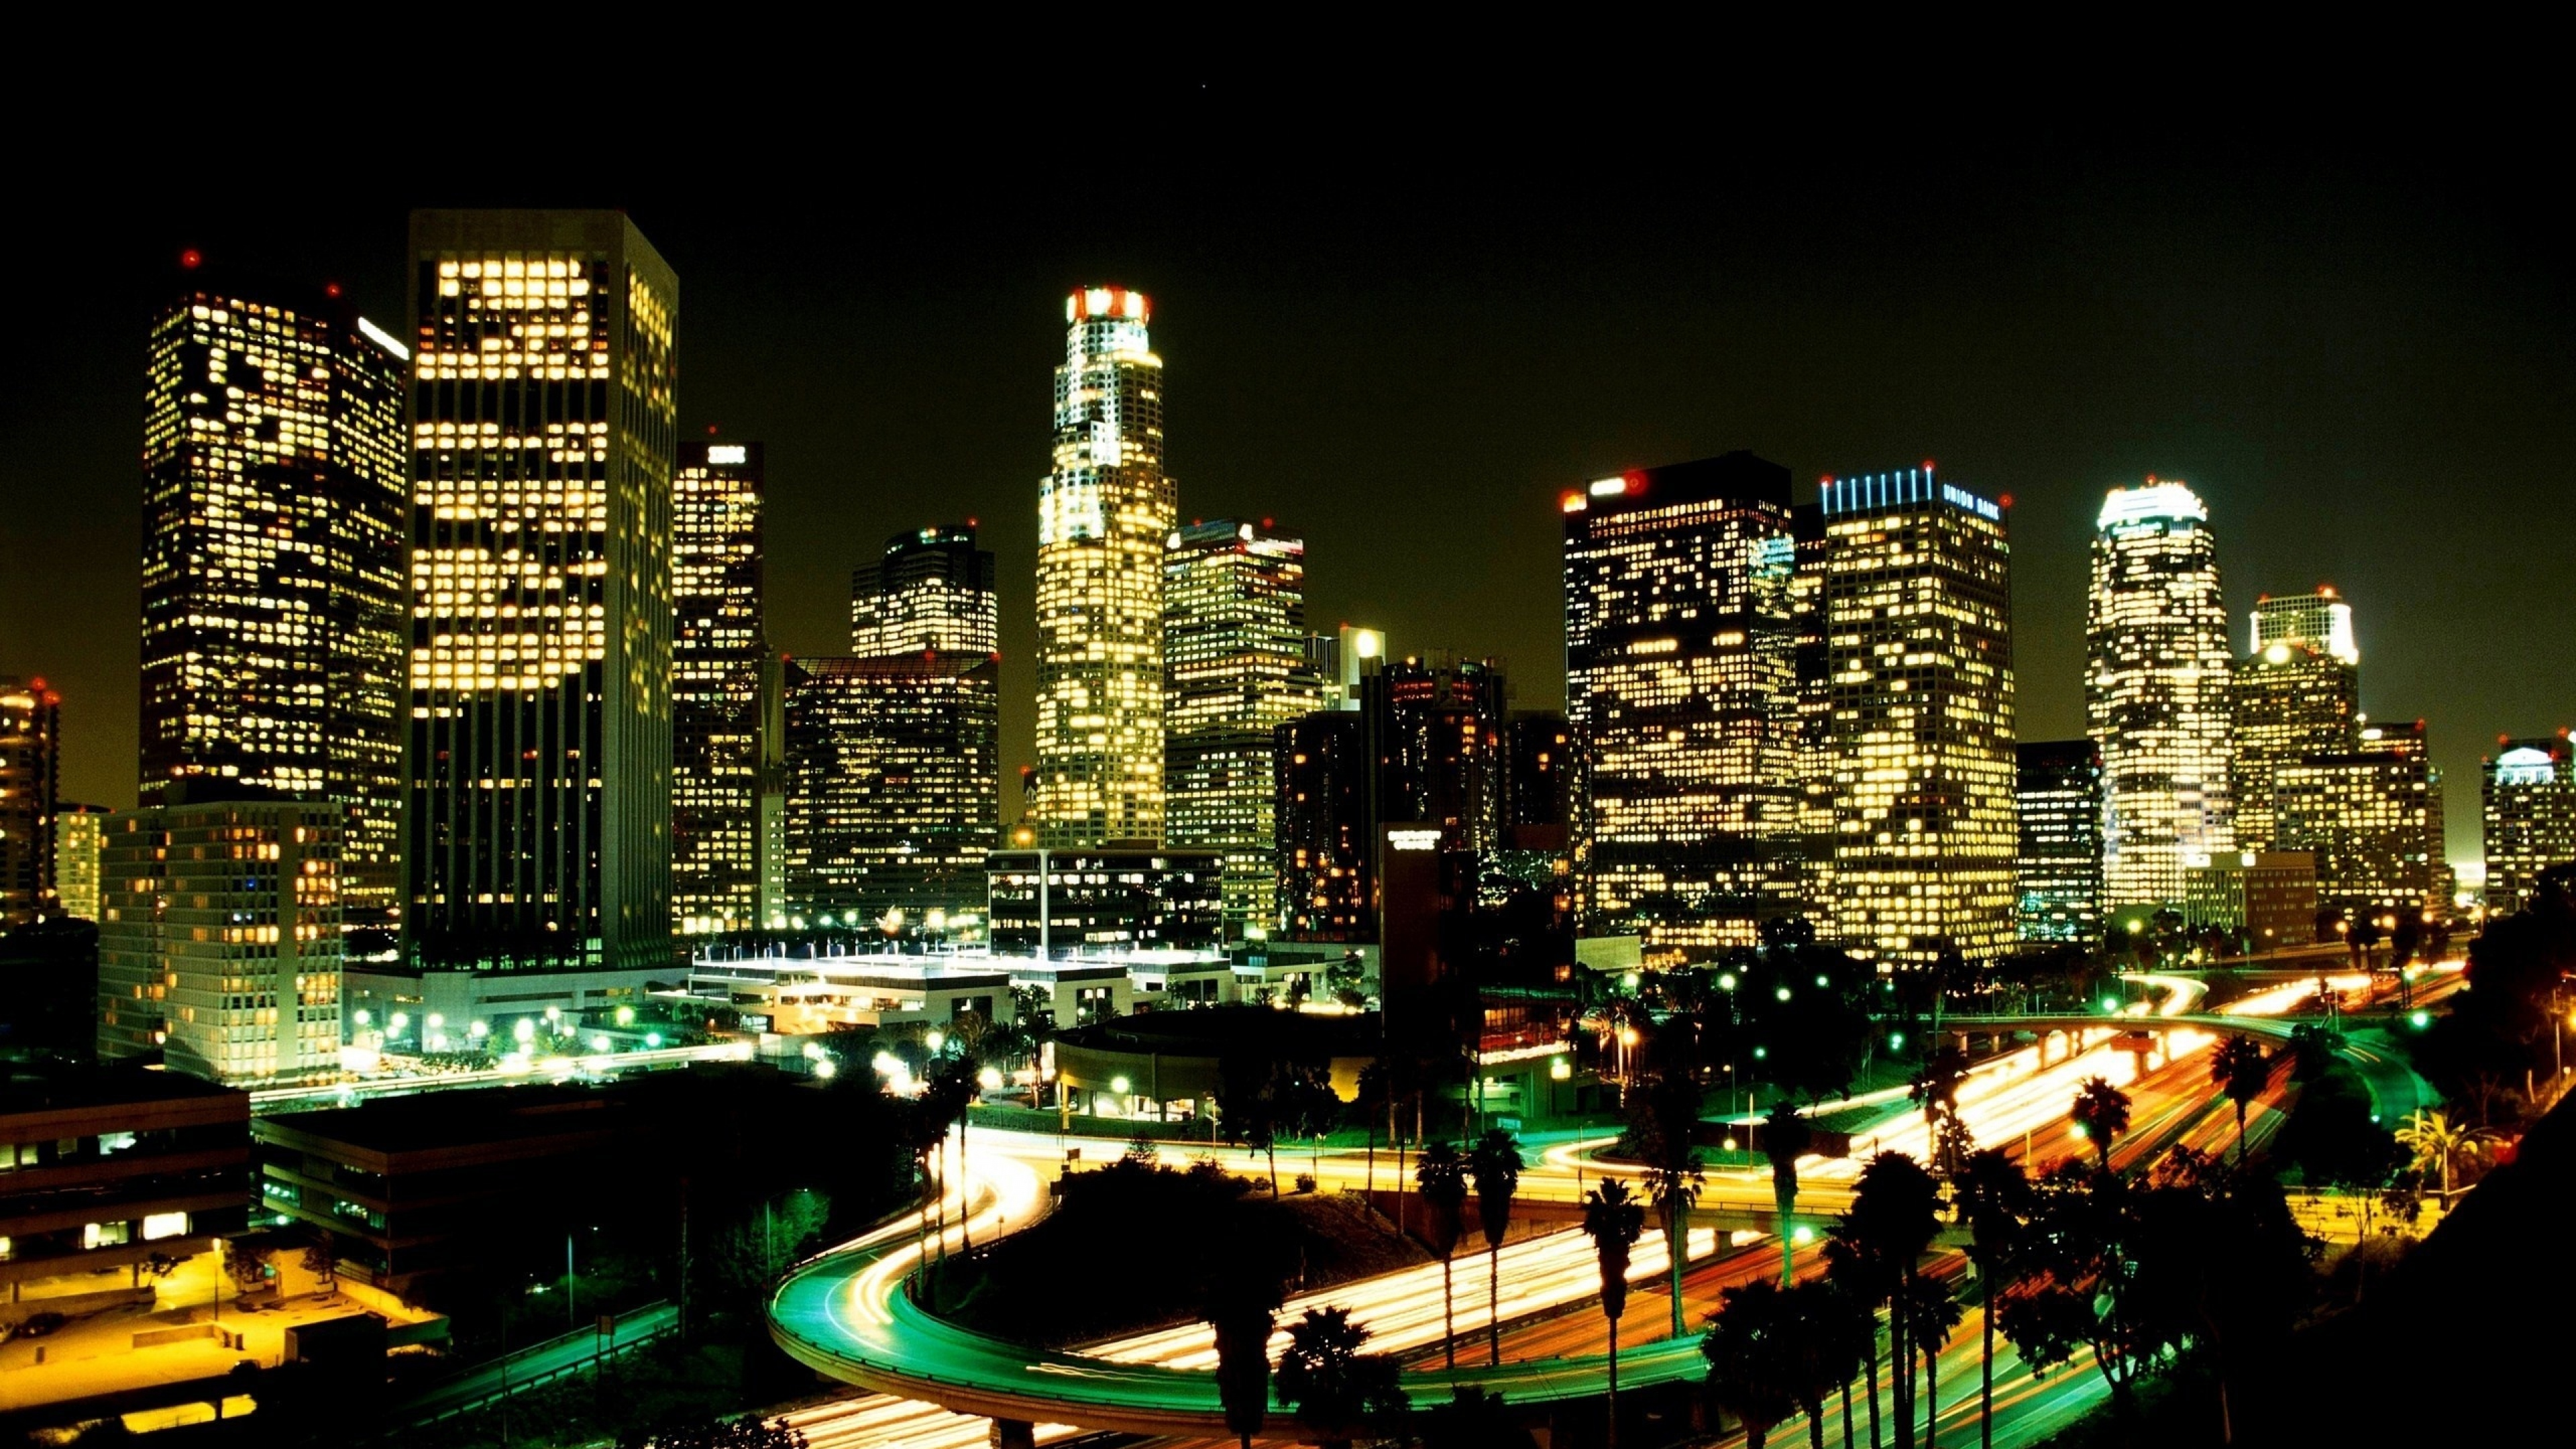 Los angeles 4k wallpaper wallpapersafari for Is la a city